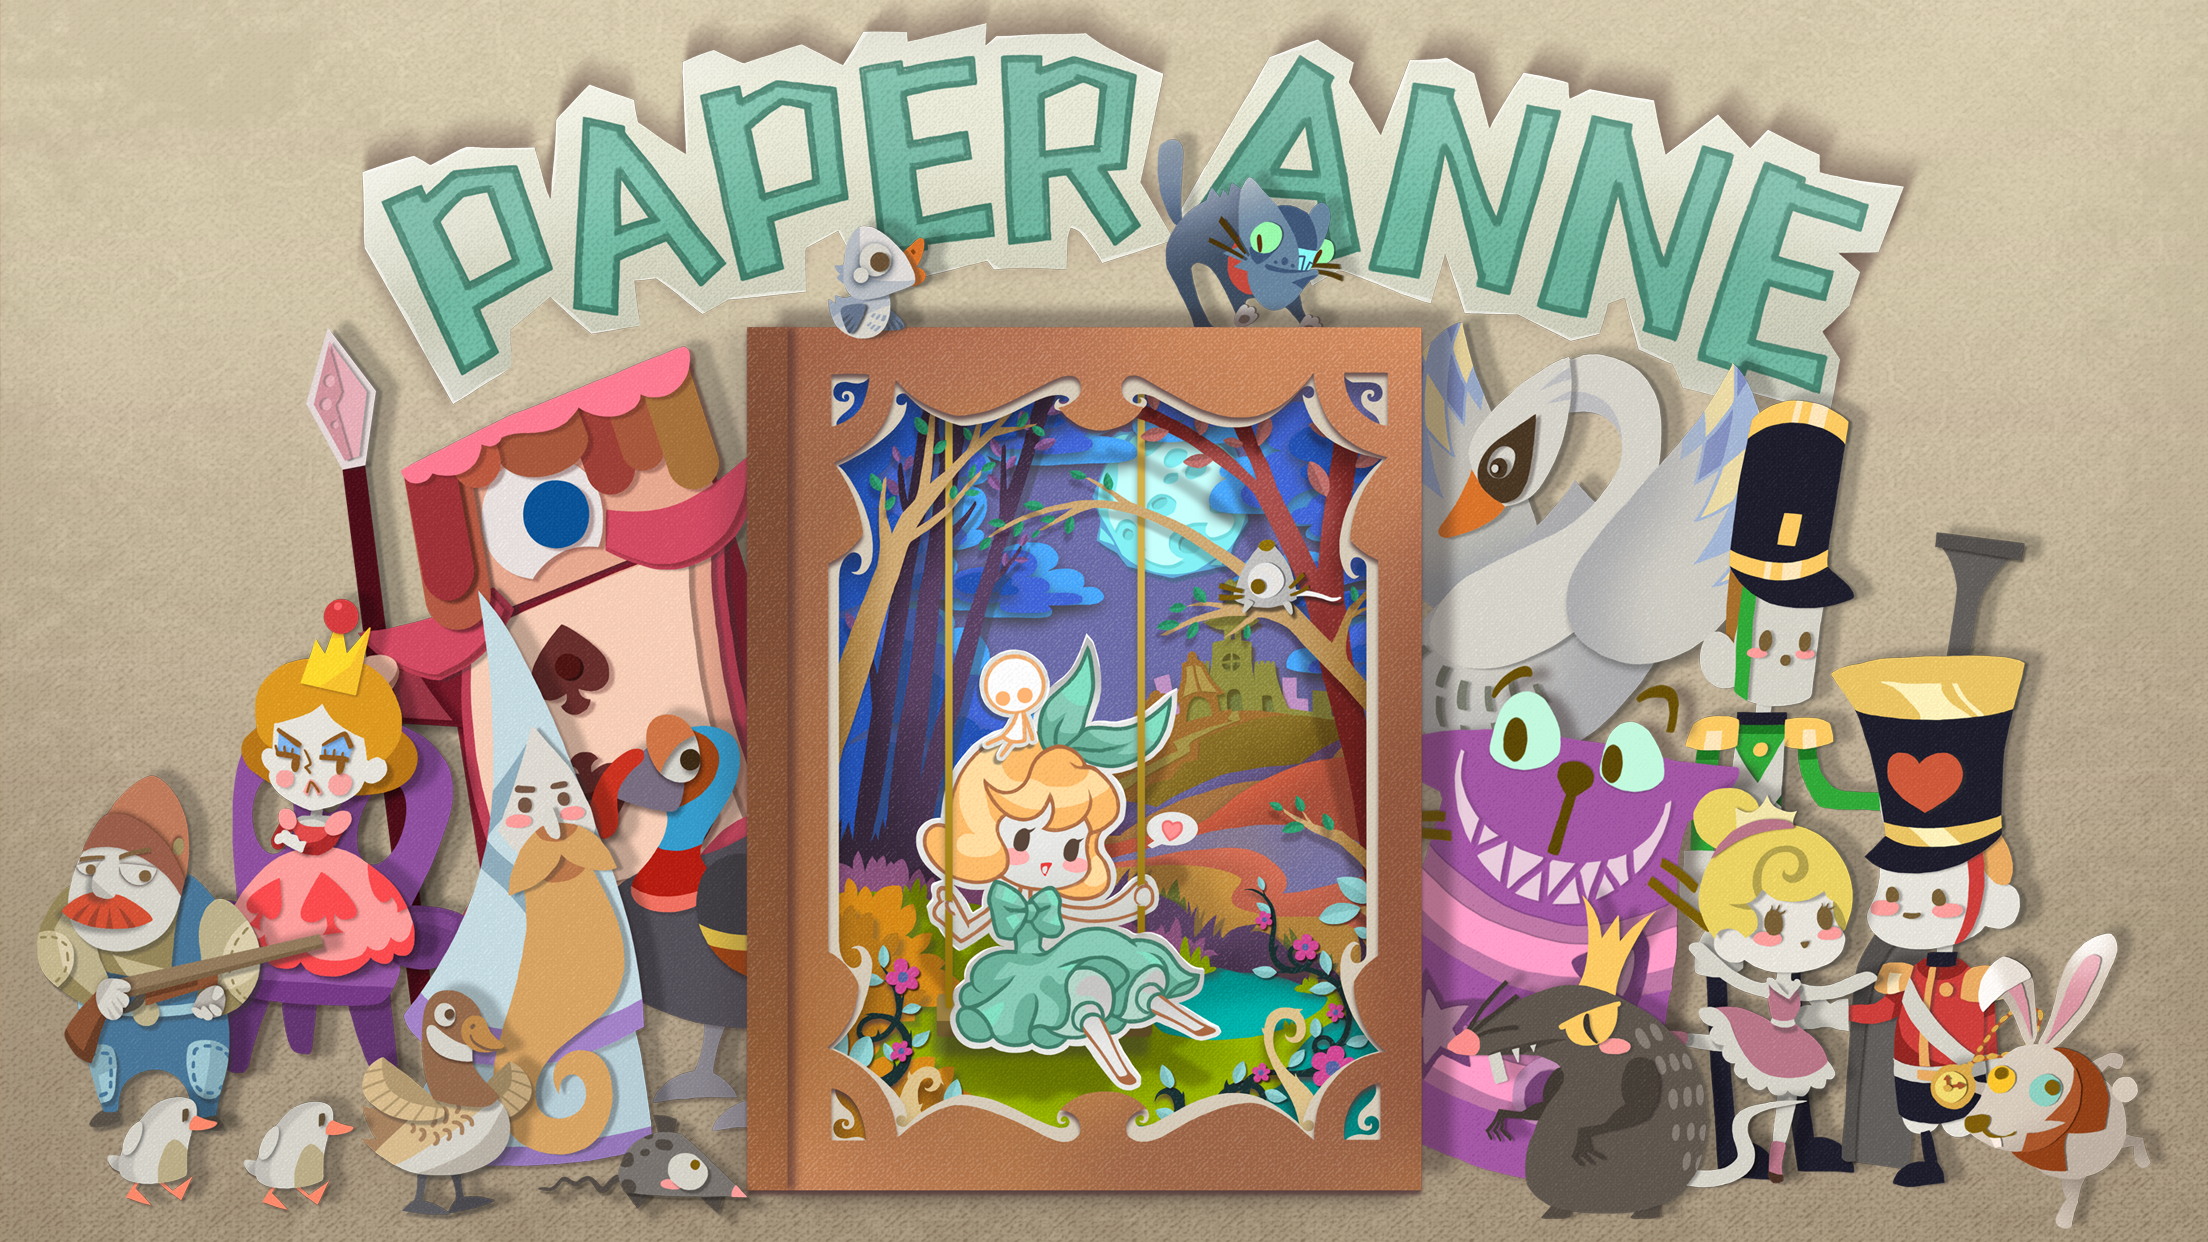 Papercraft puzzler PAPER Anne is set to charm iOS players with a new fourth chapter